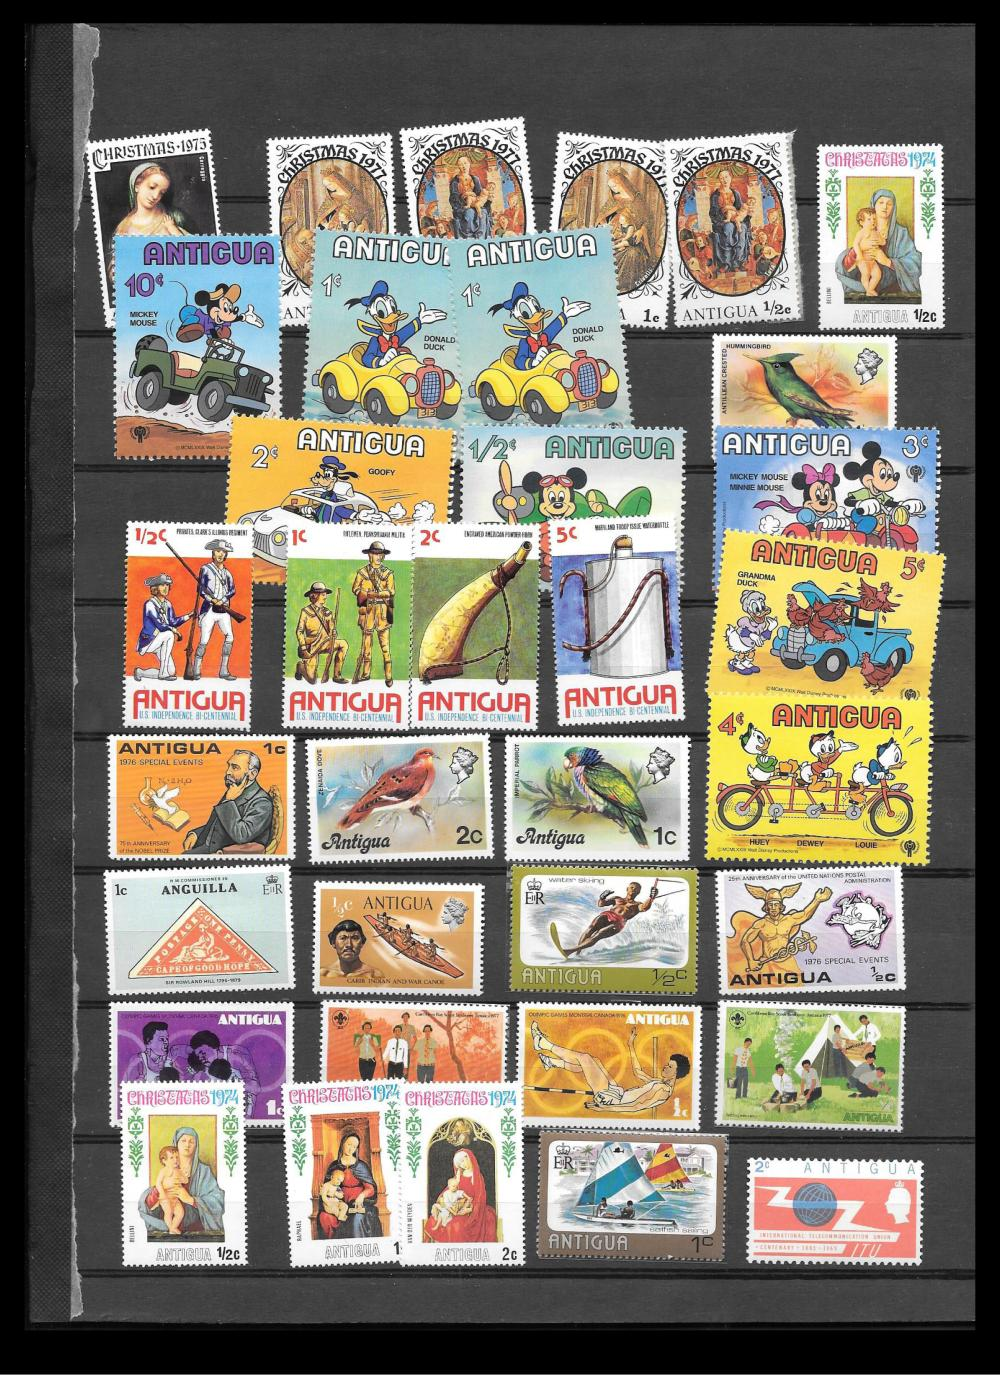 Antigua Stamp Collection